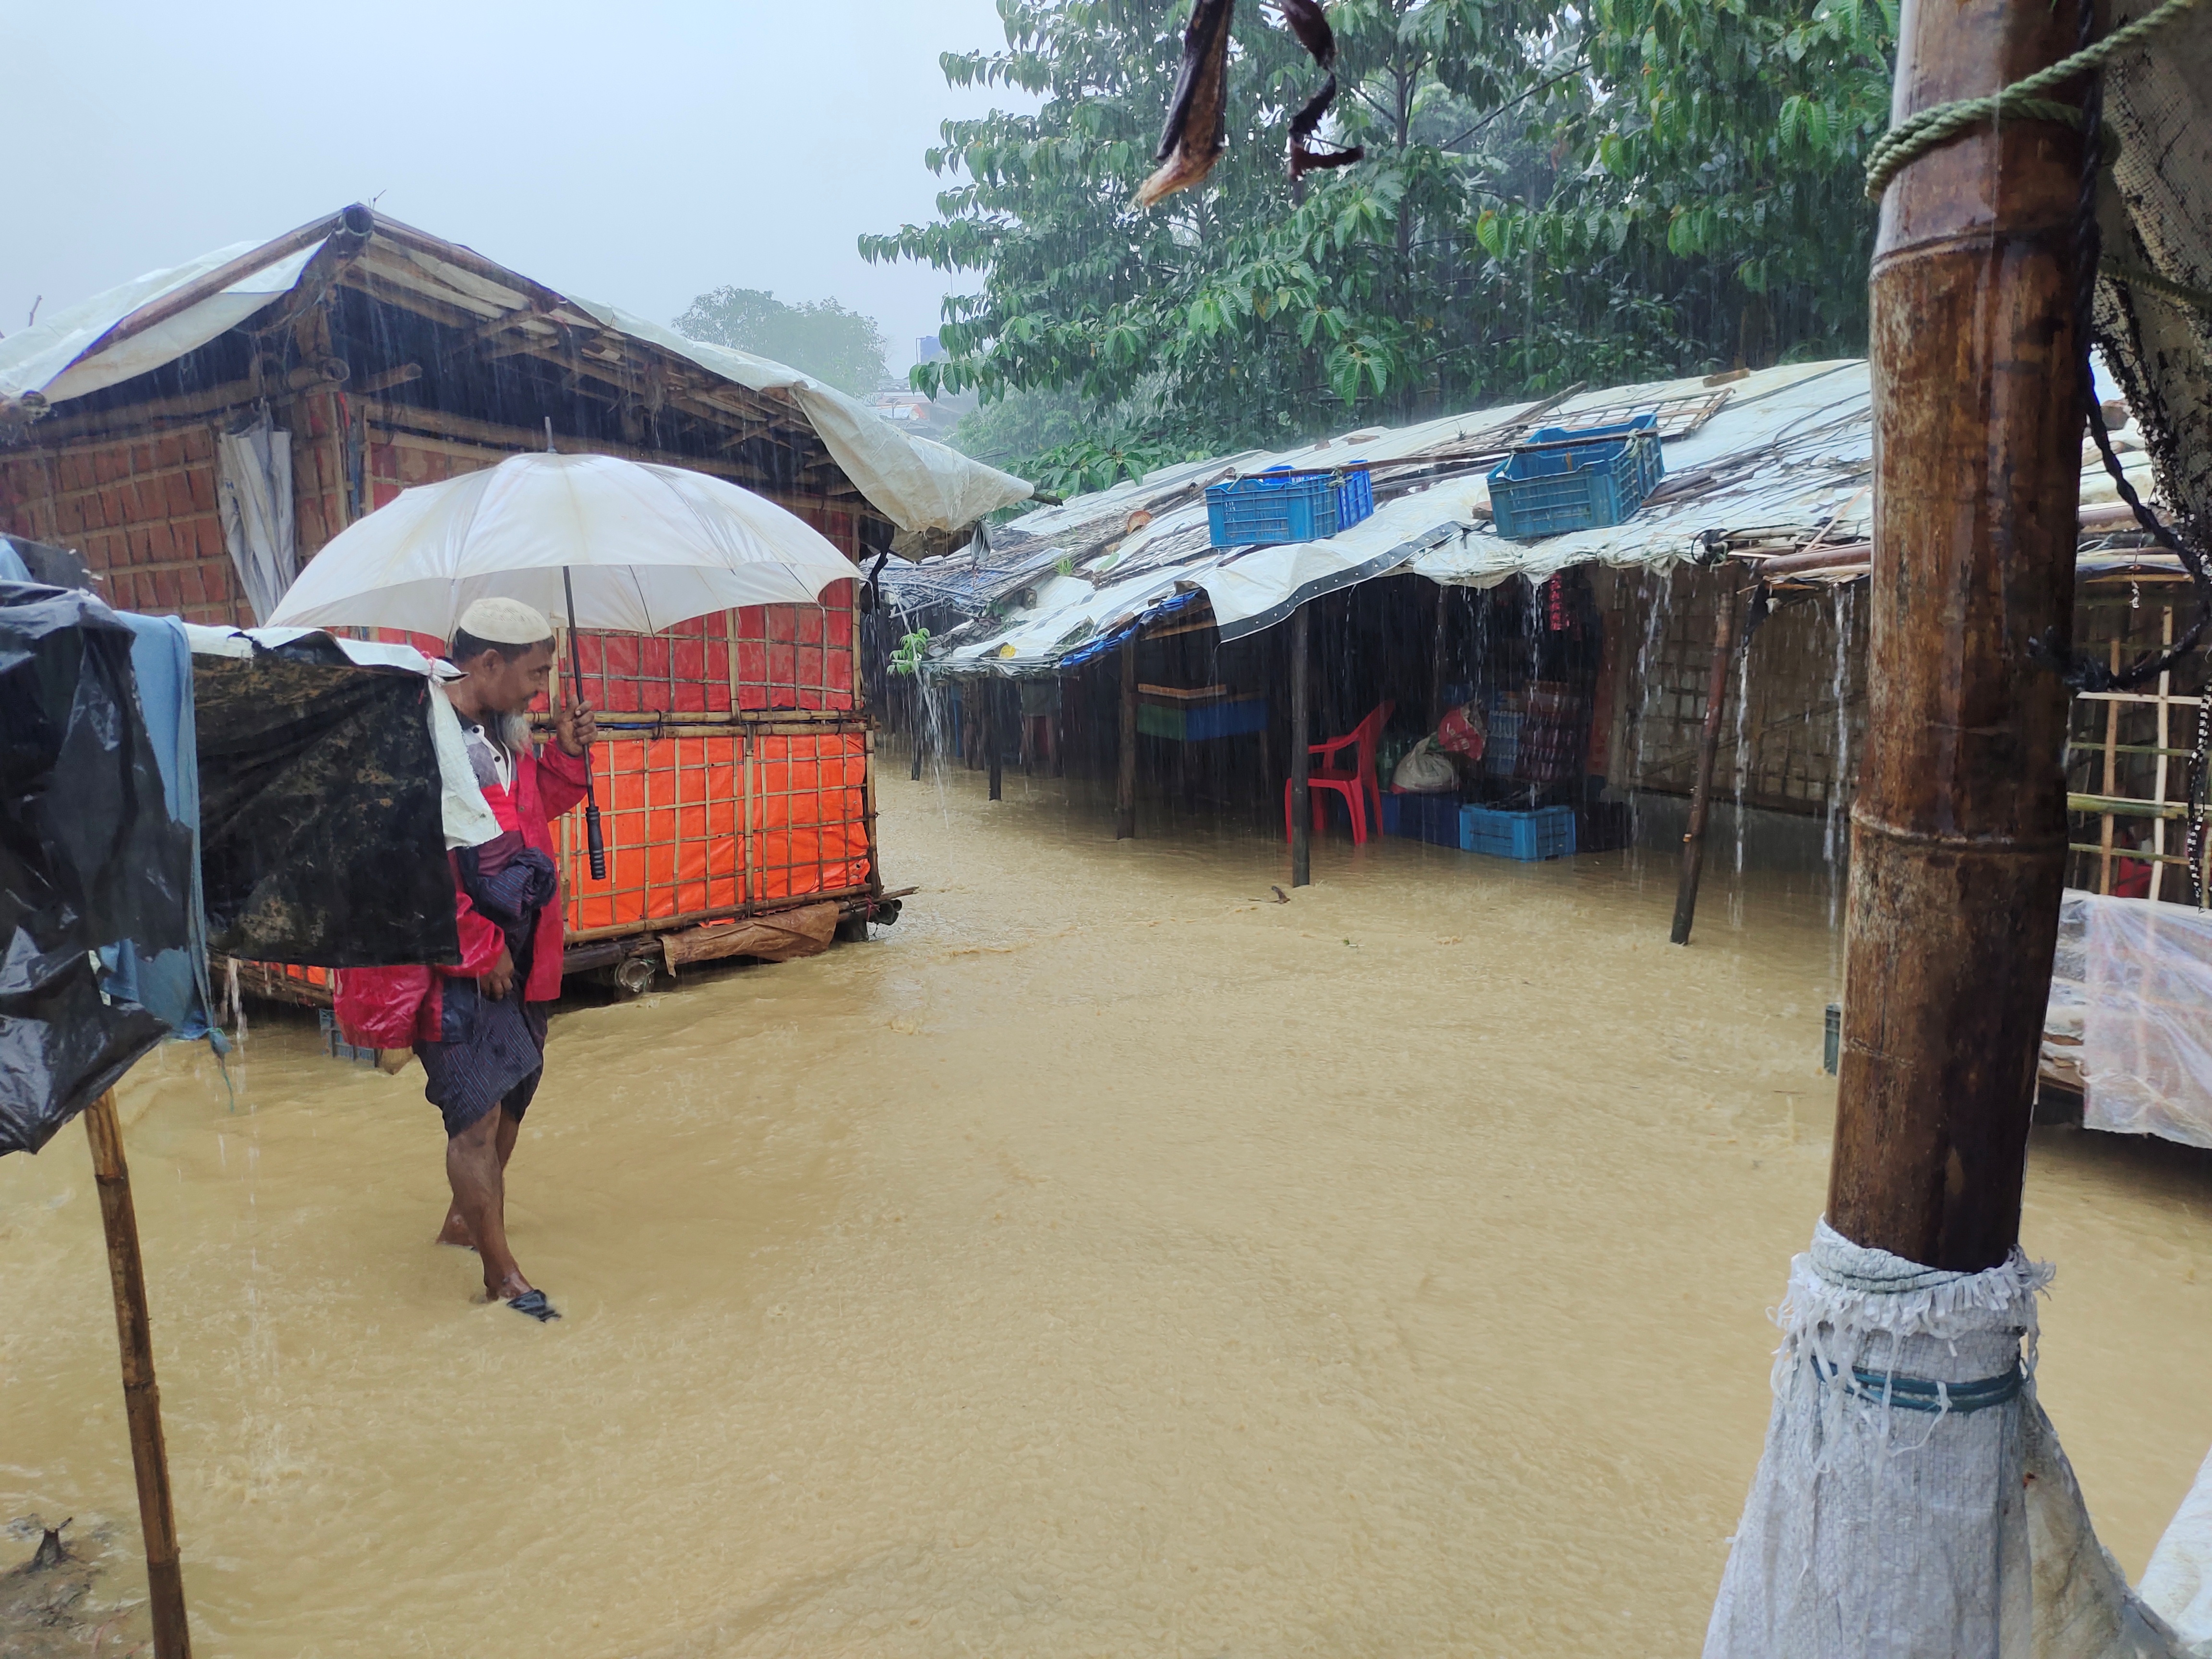 A man walks in a flooded street after heavy monsoon rains triggered flooding at Kutapalong refugee camp, in Cox's Bazar, Bangladesh July 27, 2021 in this picture obtained from social media. OMAR'S FILM SCHOOL/via REUTERS THIS IMAGE HAS BEEN SUPPLIED BY A THIRD PARTY. MANDATORY CREDIT. NO RESALES. NO ARCHIVES.